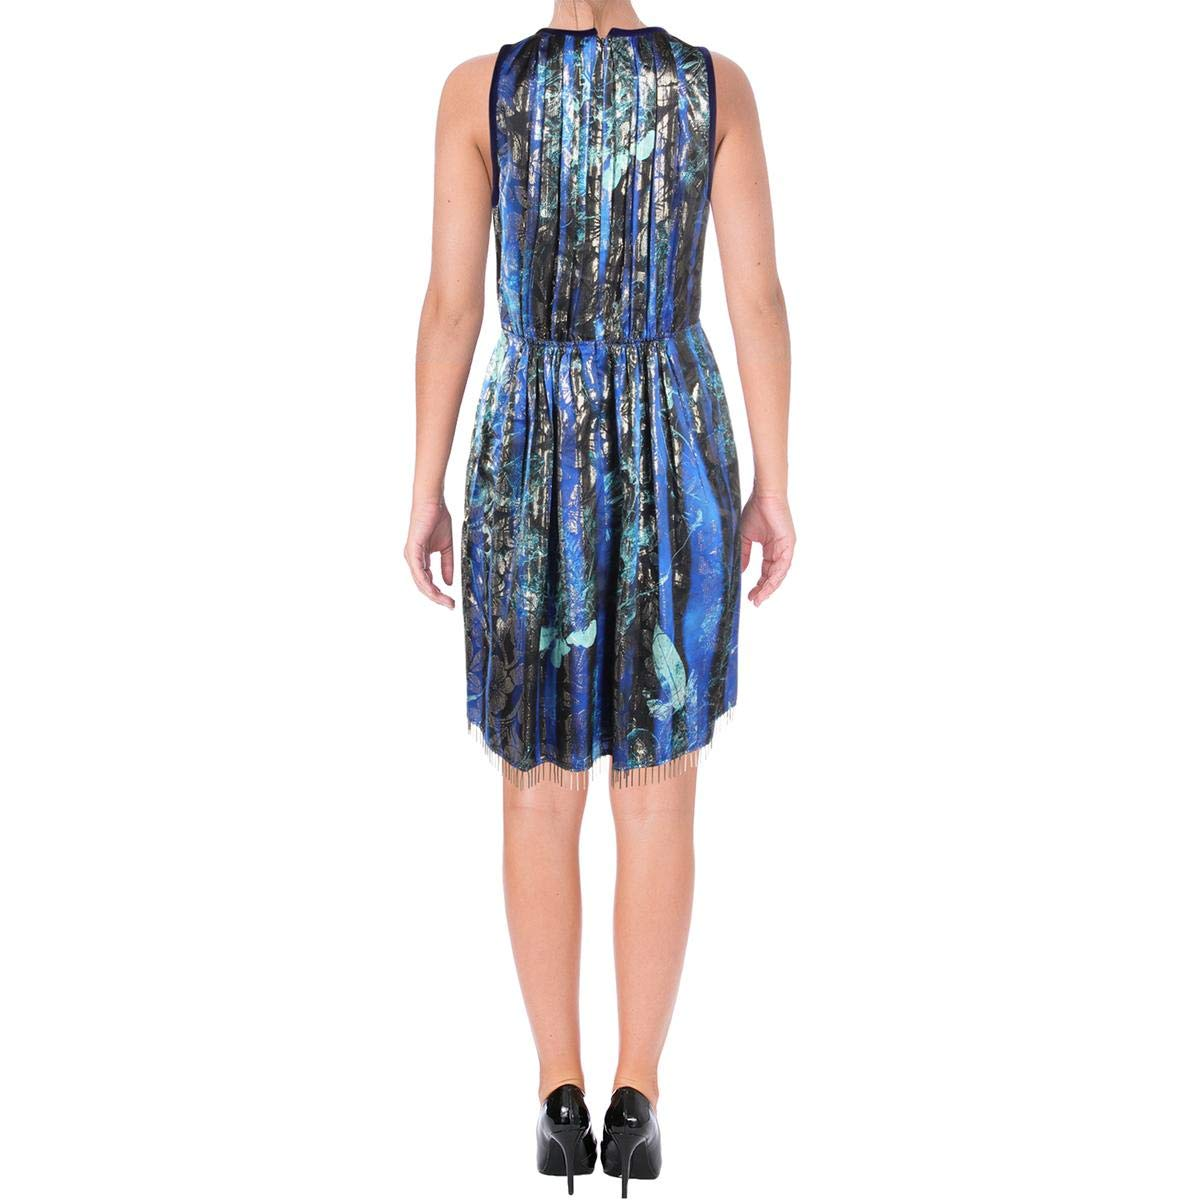 7bea3702a9e7 Elie Tahari Womens Demetria Pleated Embellished Party Dress Blue 4 at  Amazon Women's Clothing store: